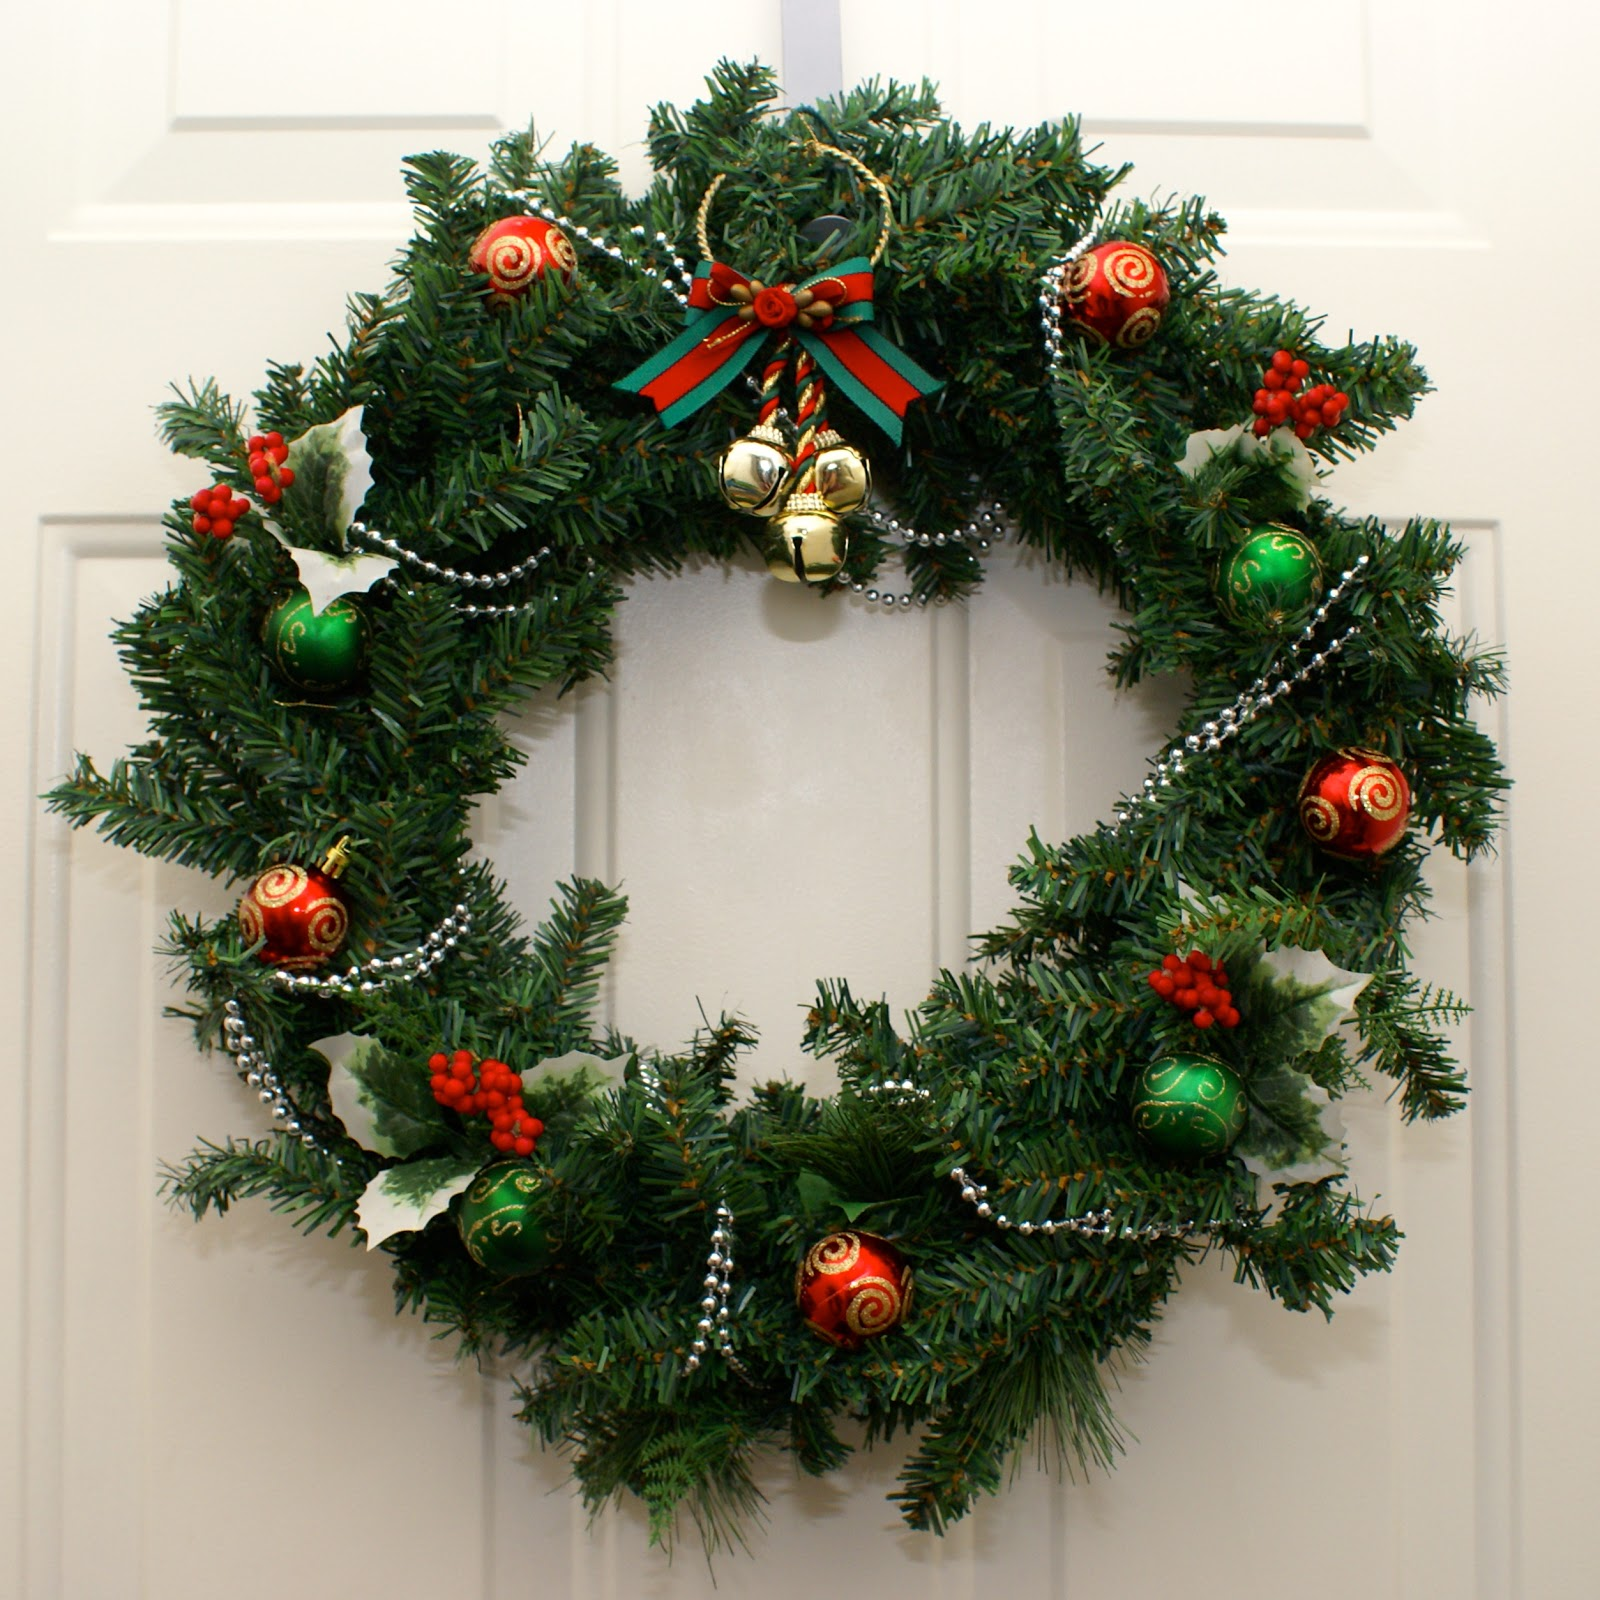 Canadian Tire Christmas Decorations The Cozy Condo 5 Garland 43 Lampshade Leftovers Wreath